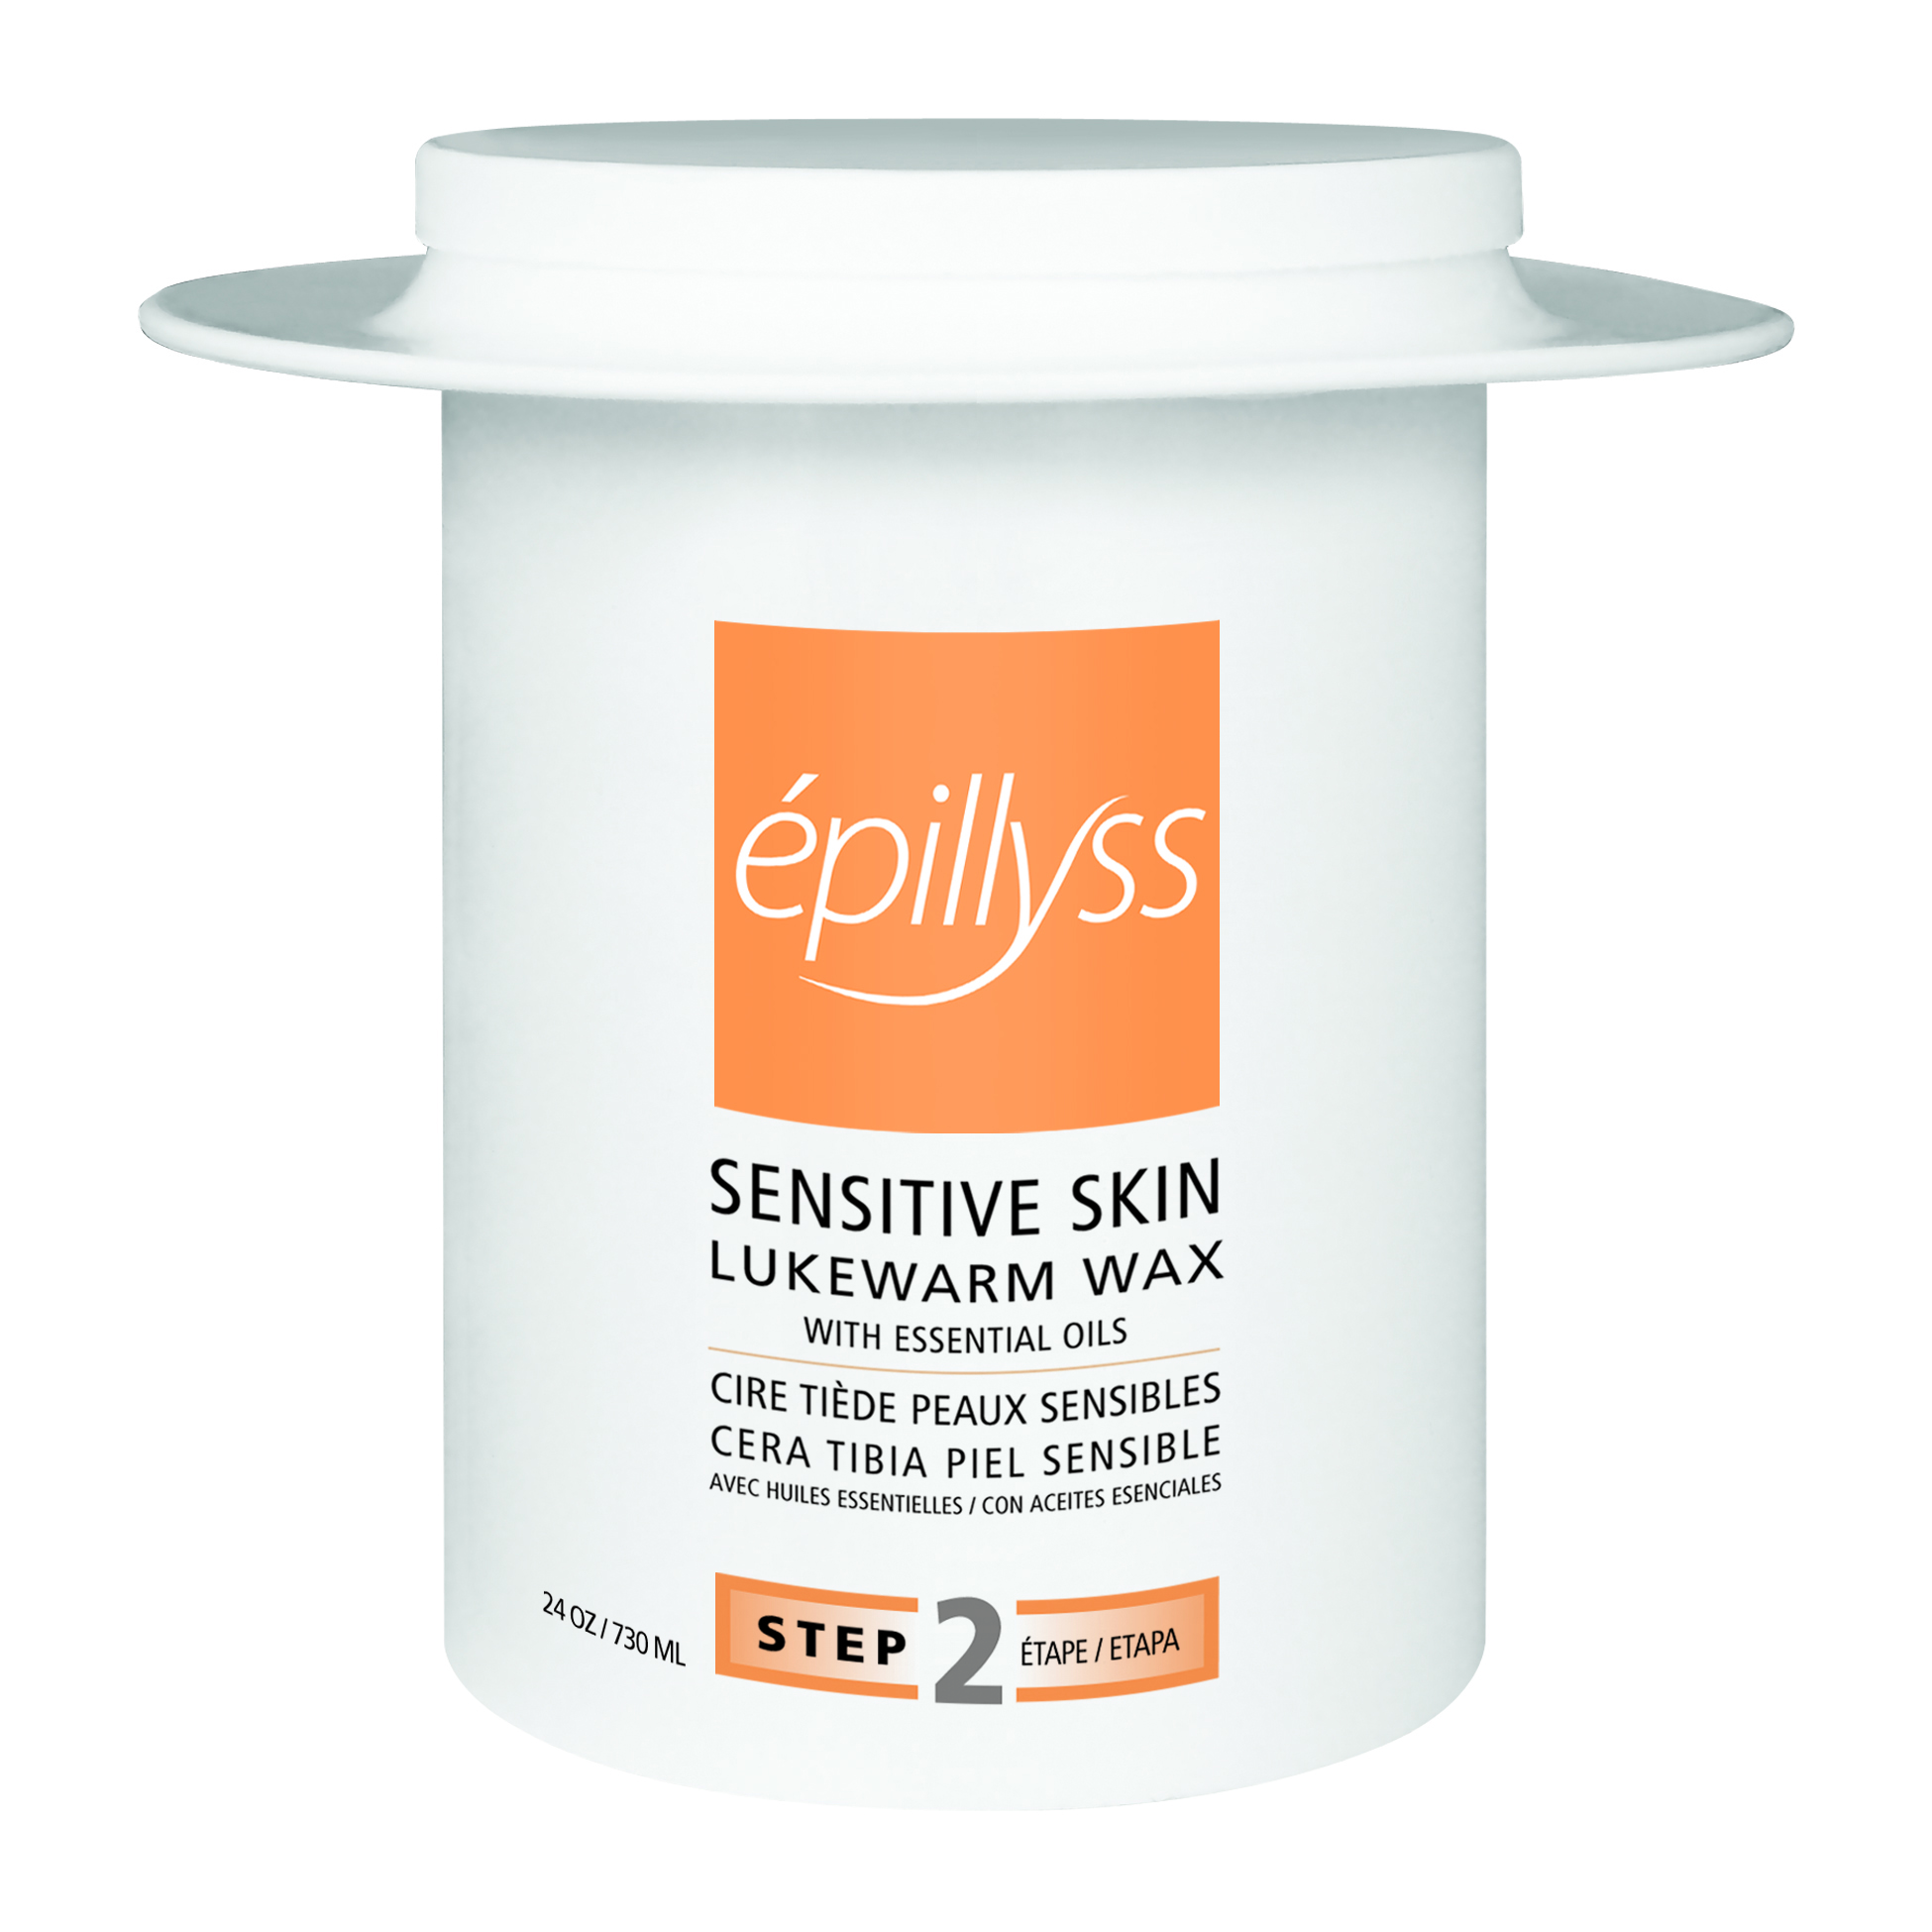 Épillyss_SensitiveSkin_24oz_S2.jpg